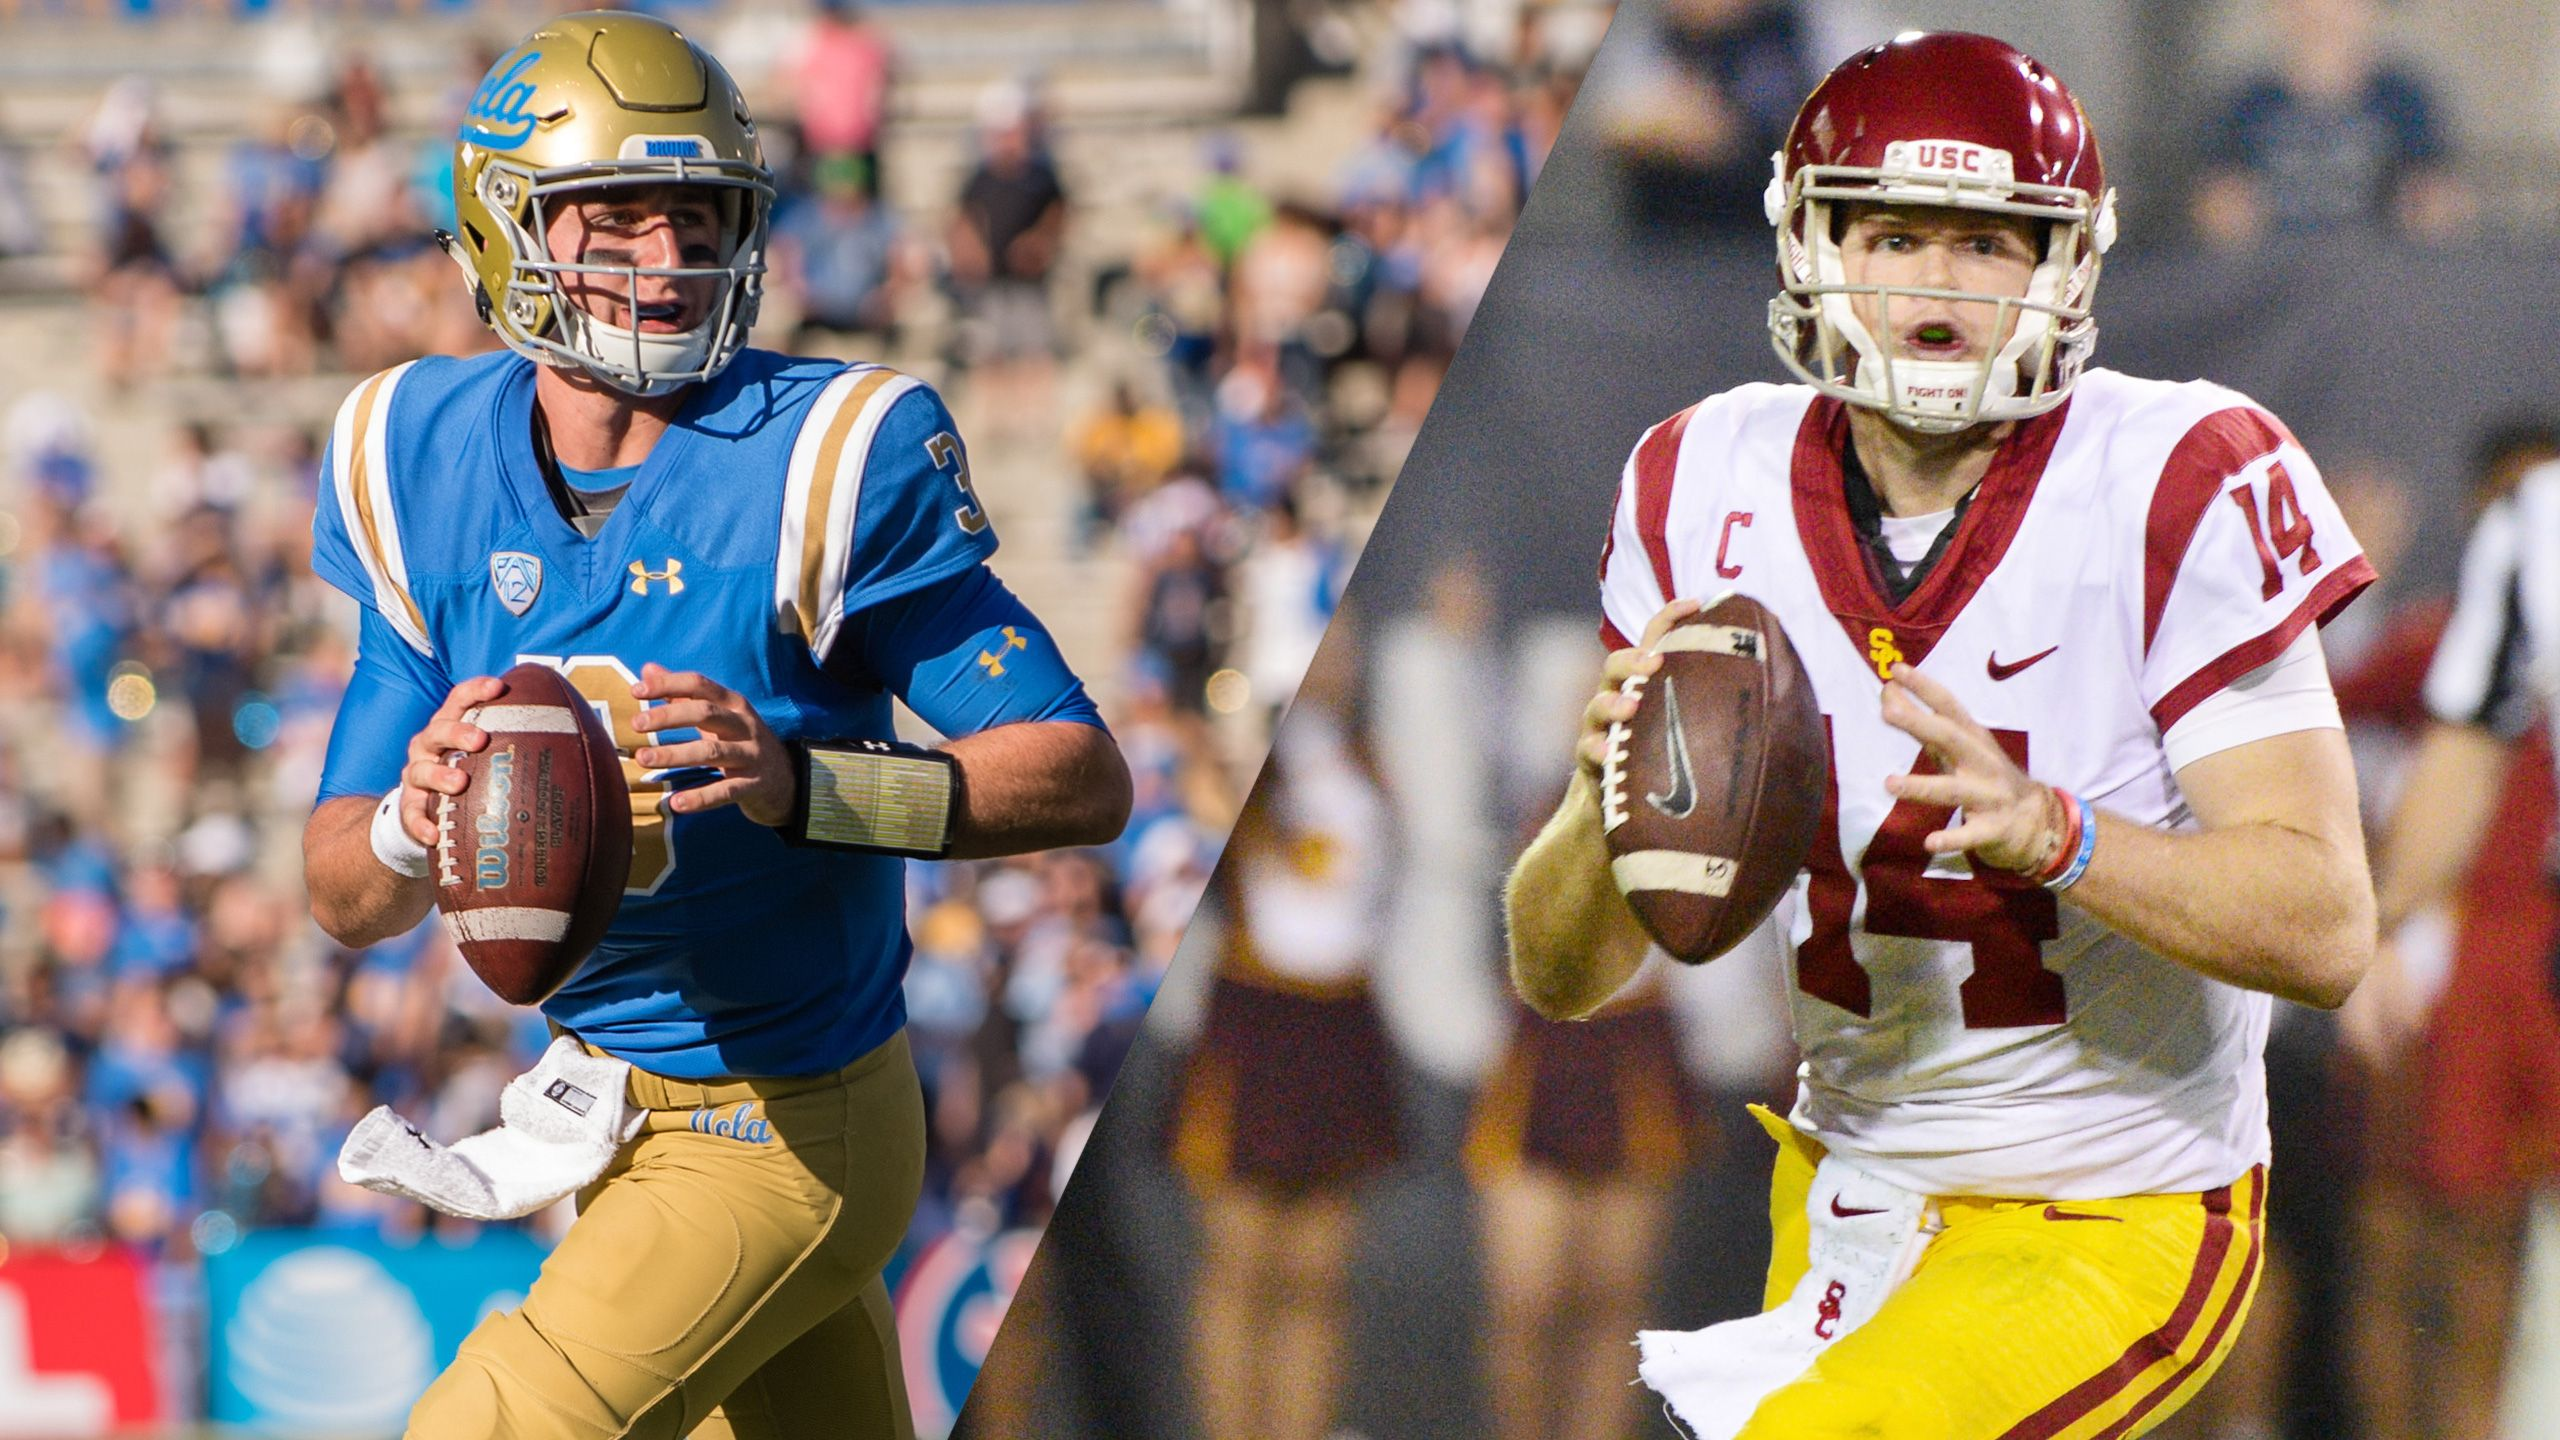 UCLA vs. #11 USC (Football) (re-air)